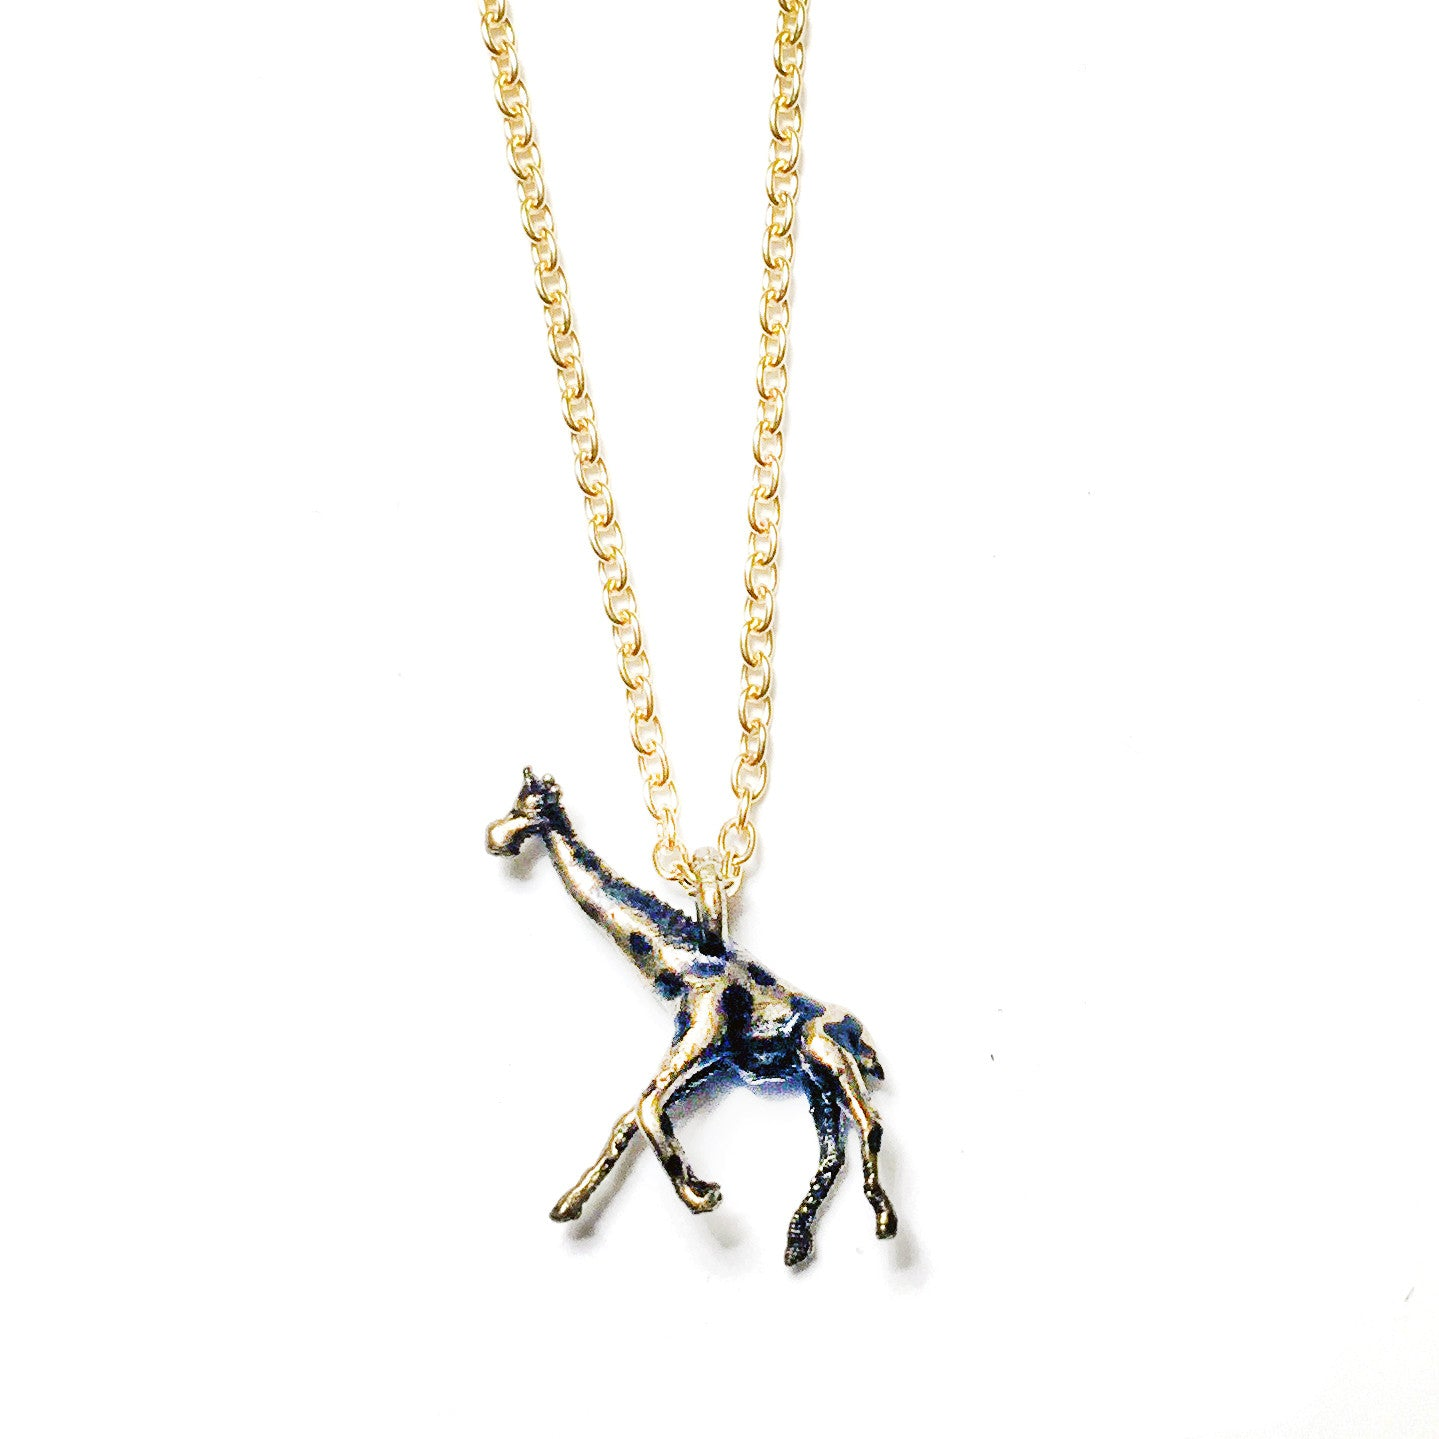 runninggiraffewb products pendant giraffe works necklace stern running design